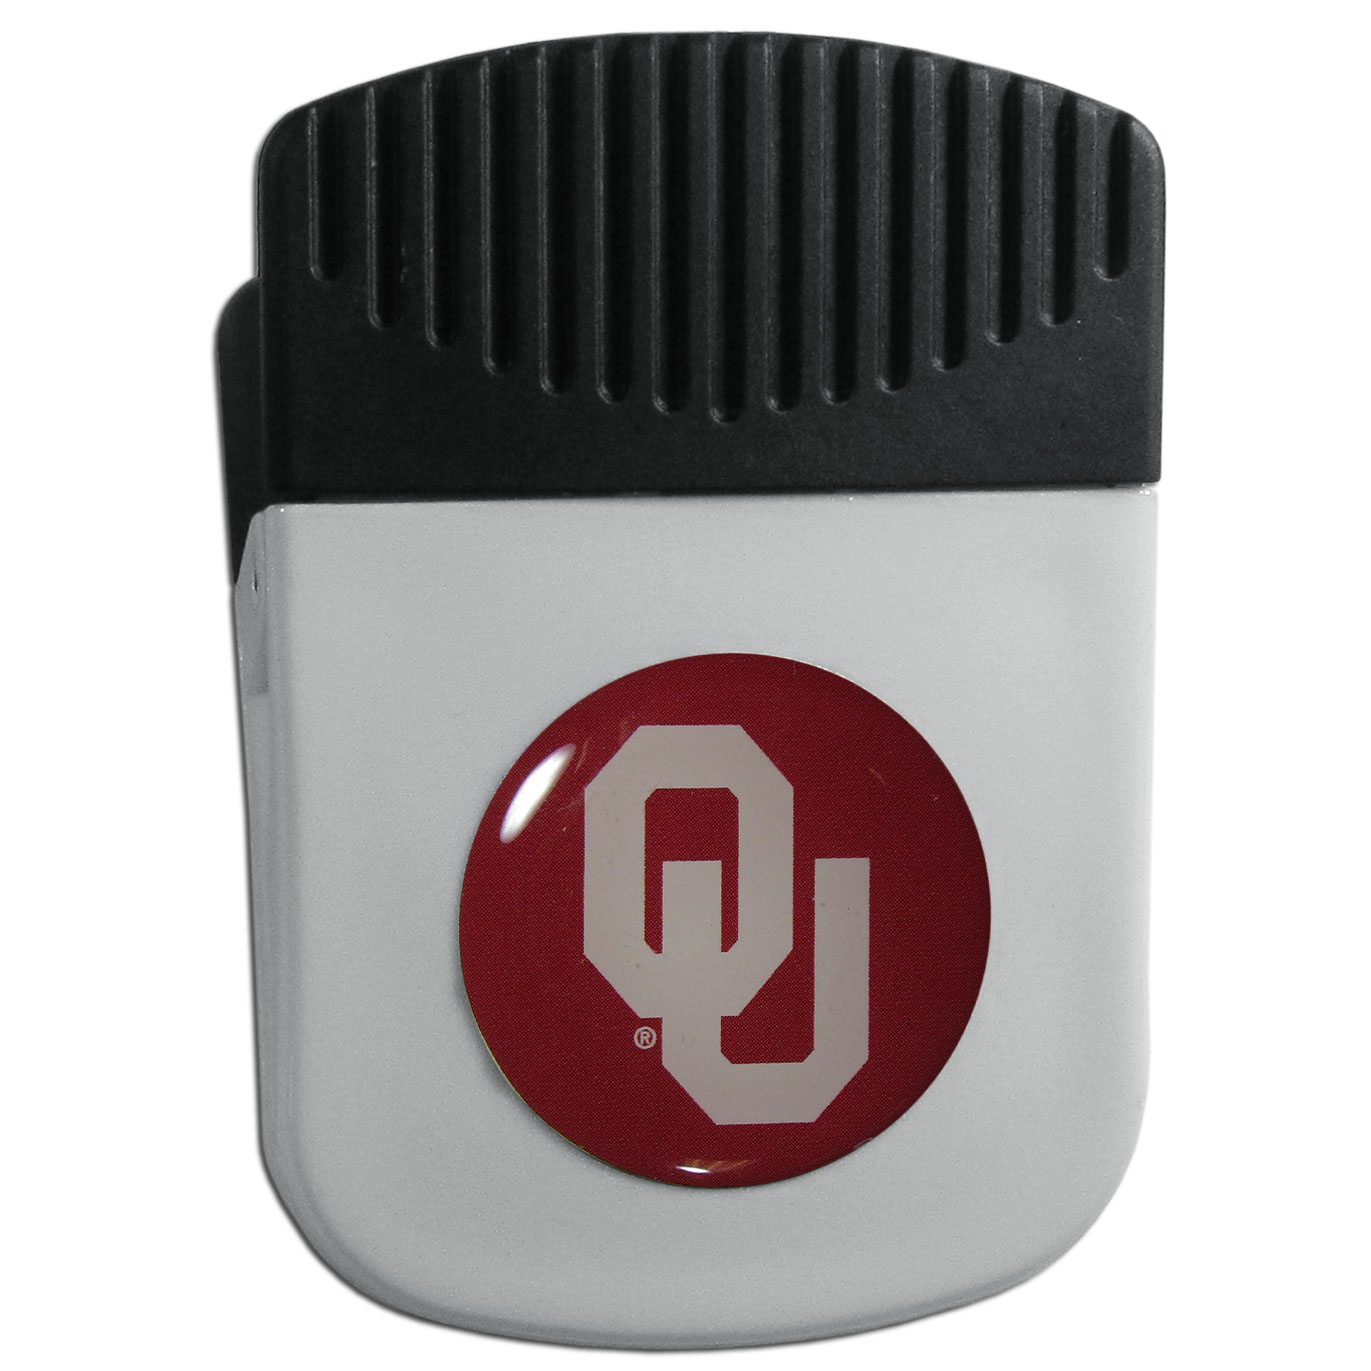 Oklahoma Sooners Chip Clip Magnet - Use this attractive clip magnet to hold memos, photos or appointment cards on the fridge or take it down keep use it to clip bags shut. The magnet features a domed Oklahoma Sooners logo.